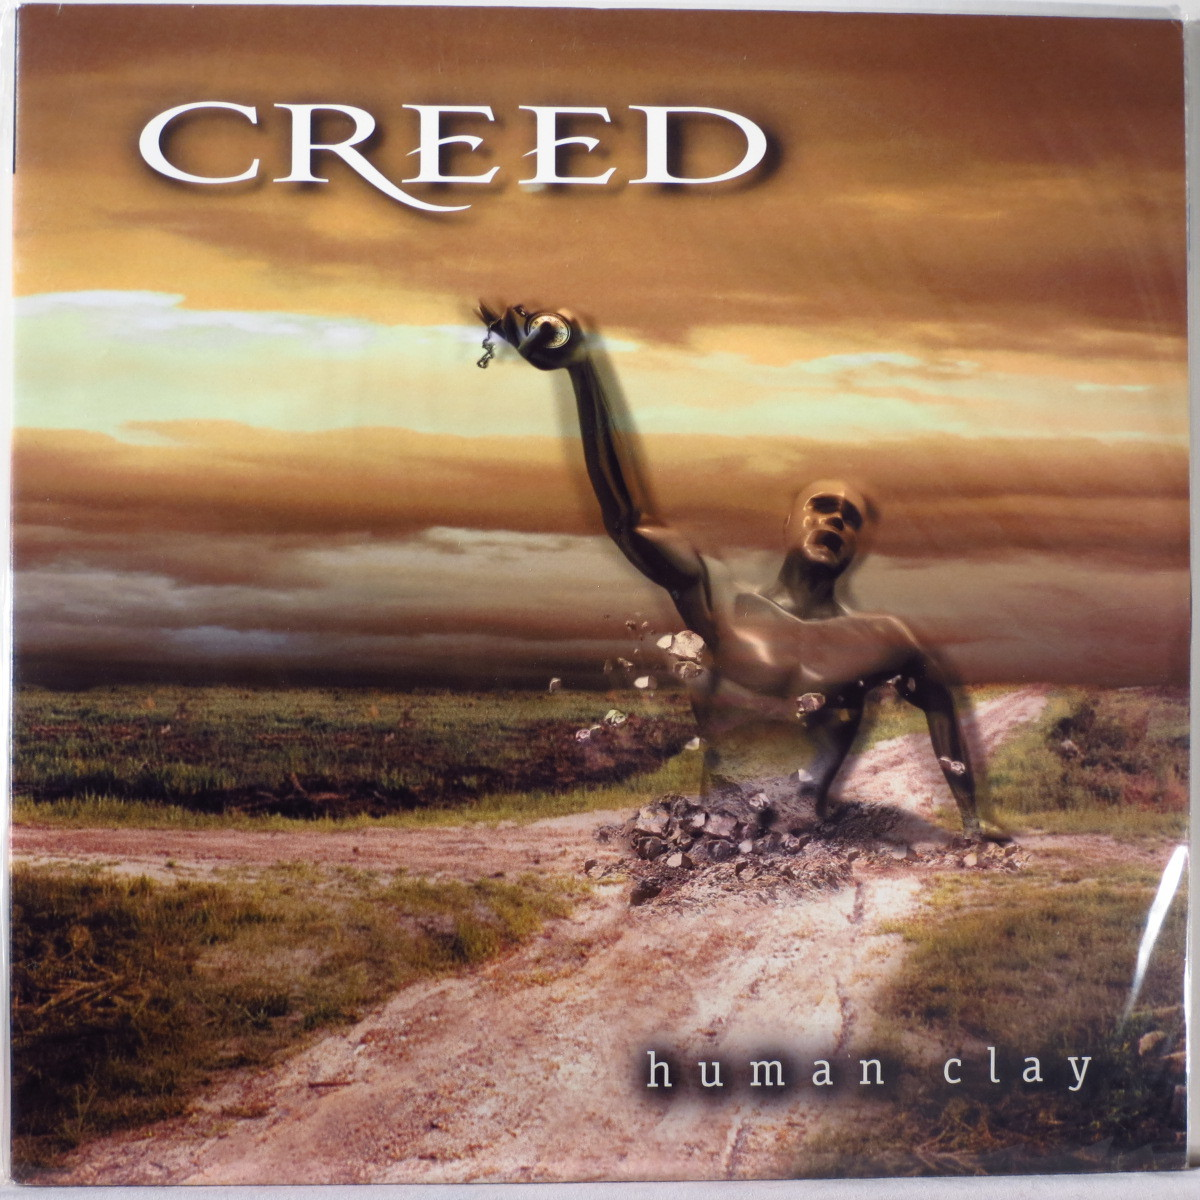 Creed - Human Clay - Album Cover